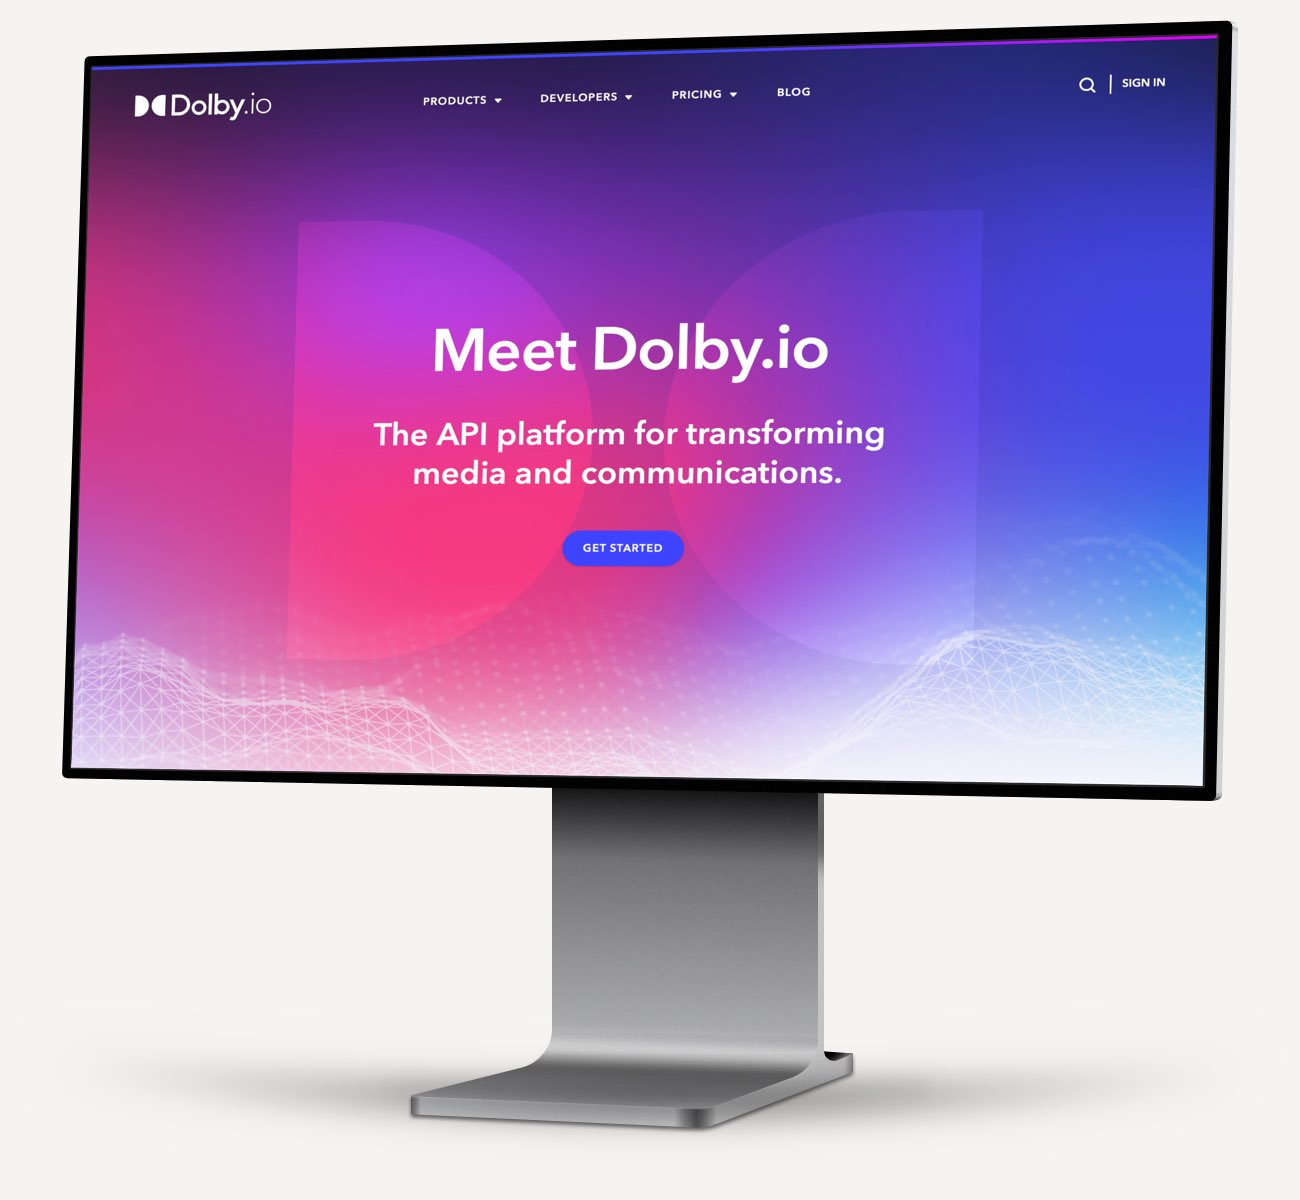 Dolby.io website mockup